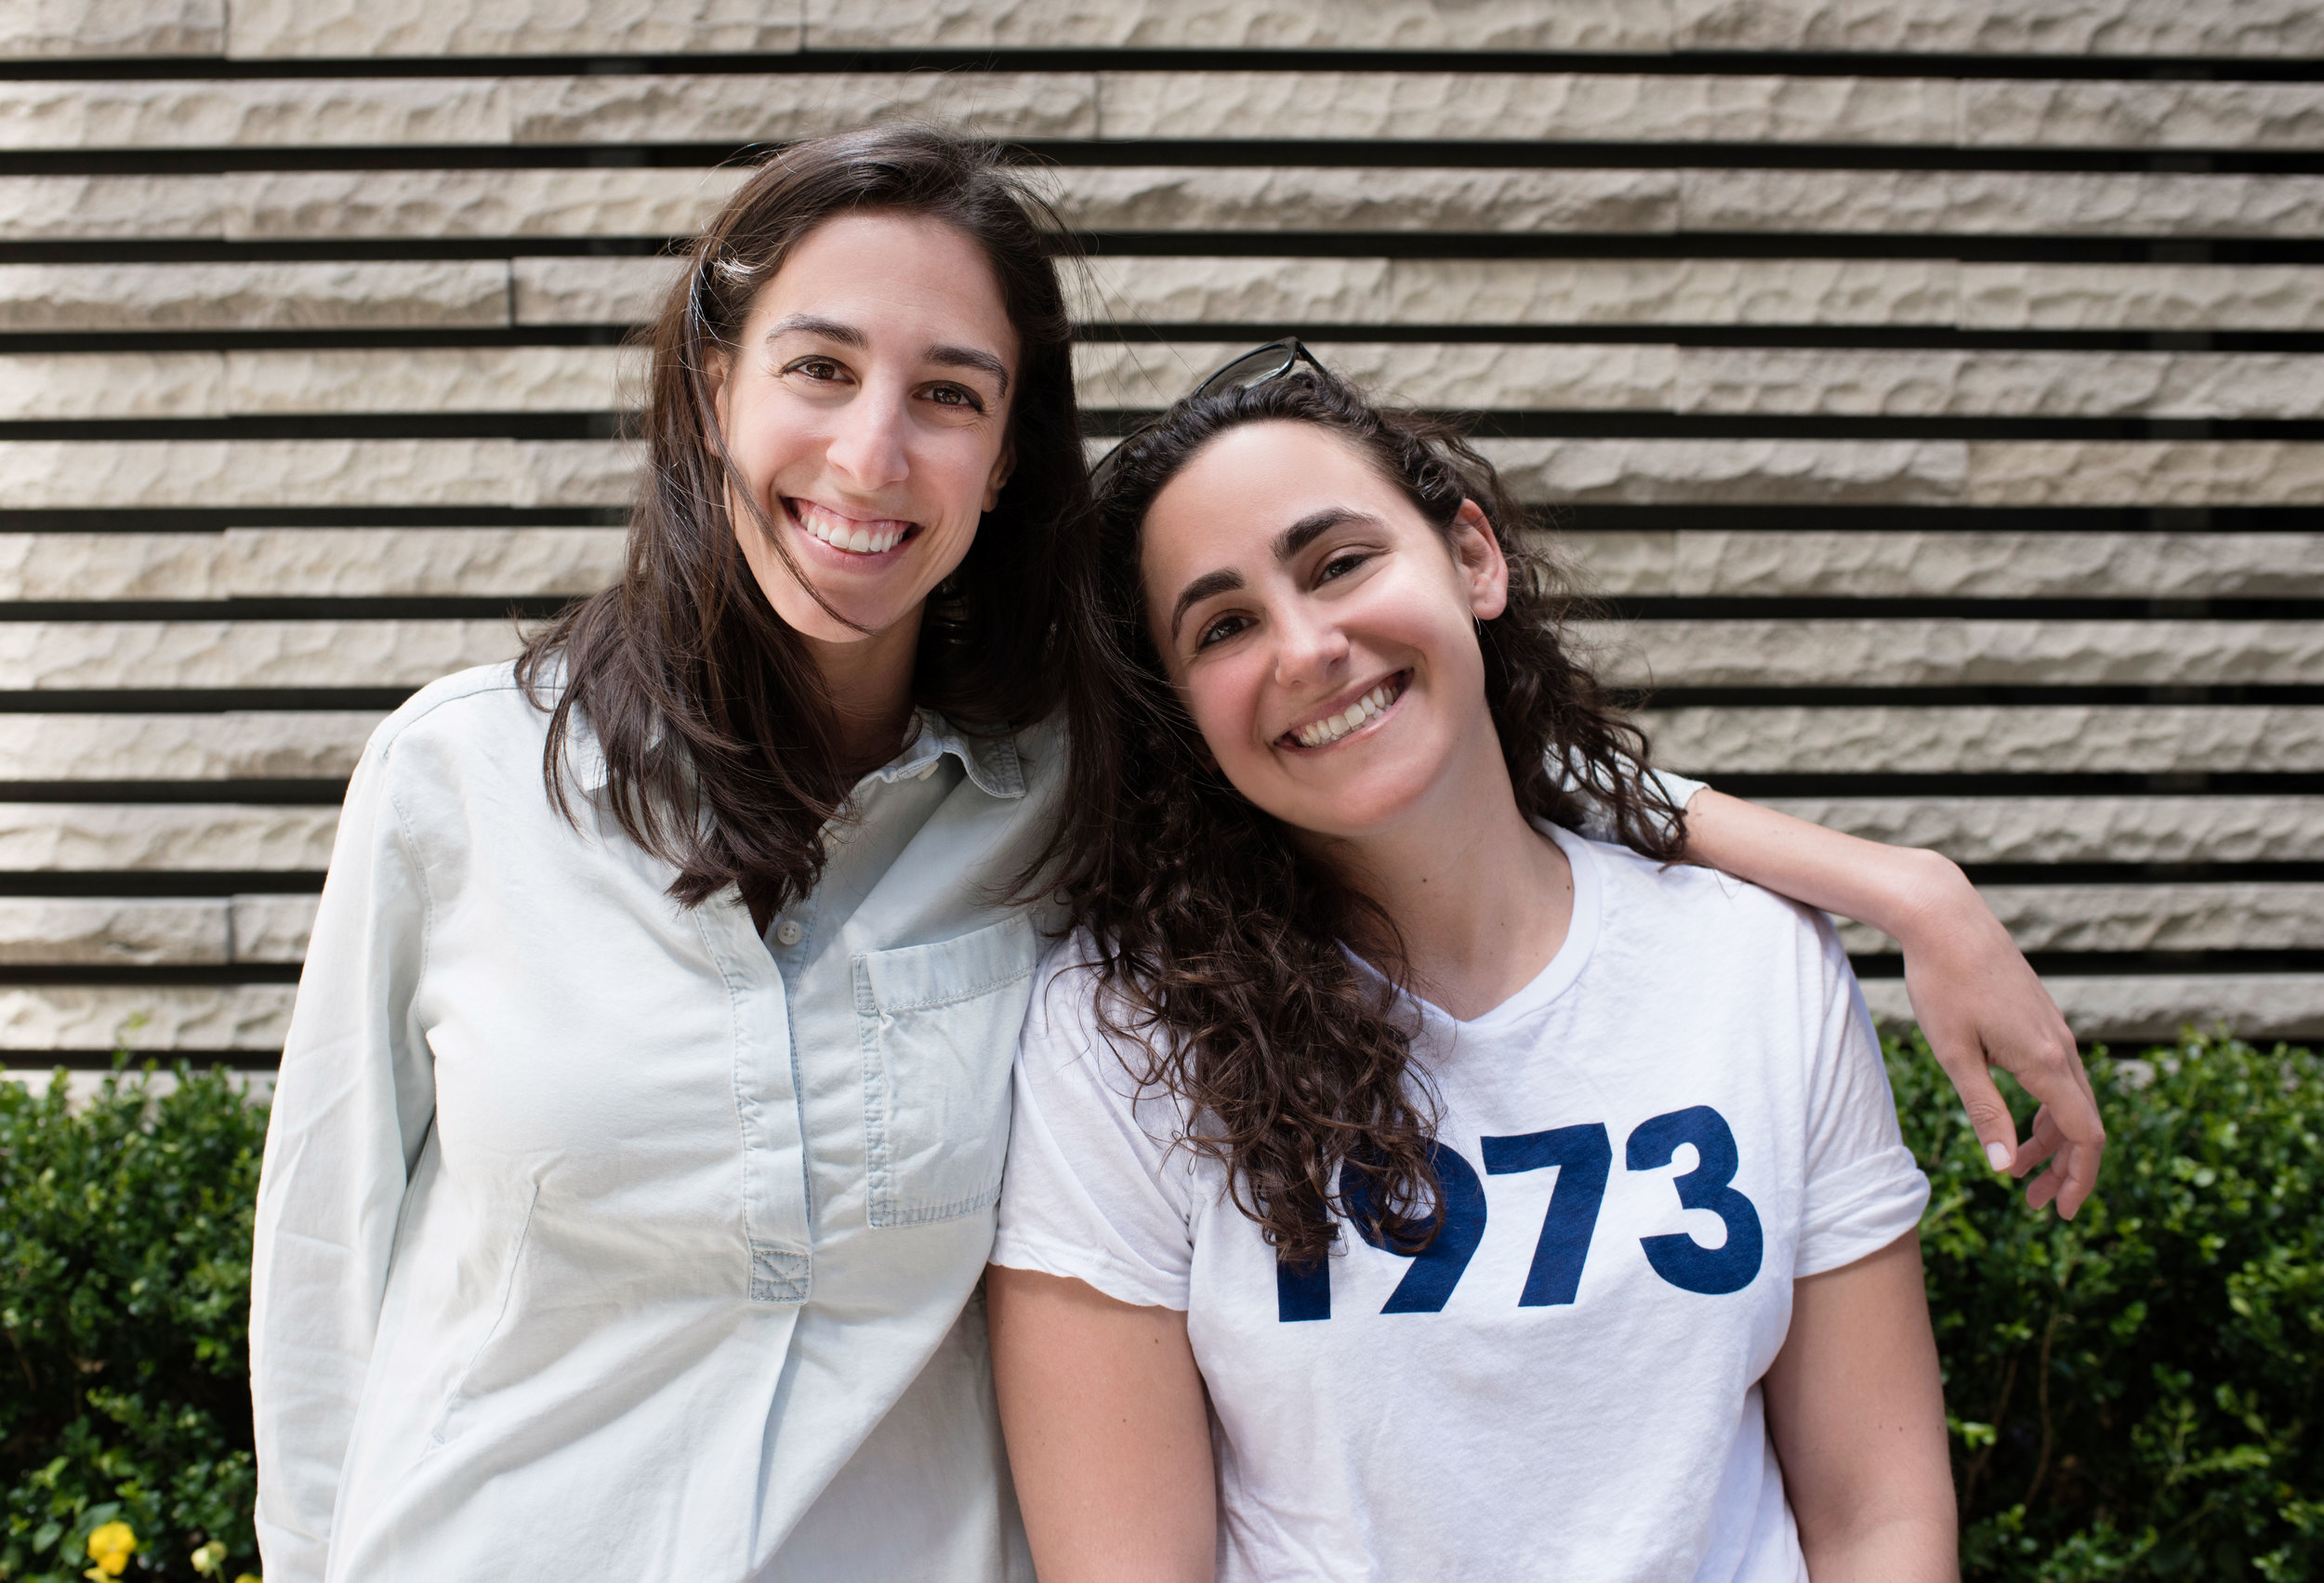 Jordana Kier and Alexandra Friedman, Founders of LOLA.